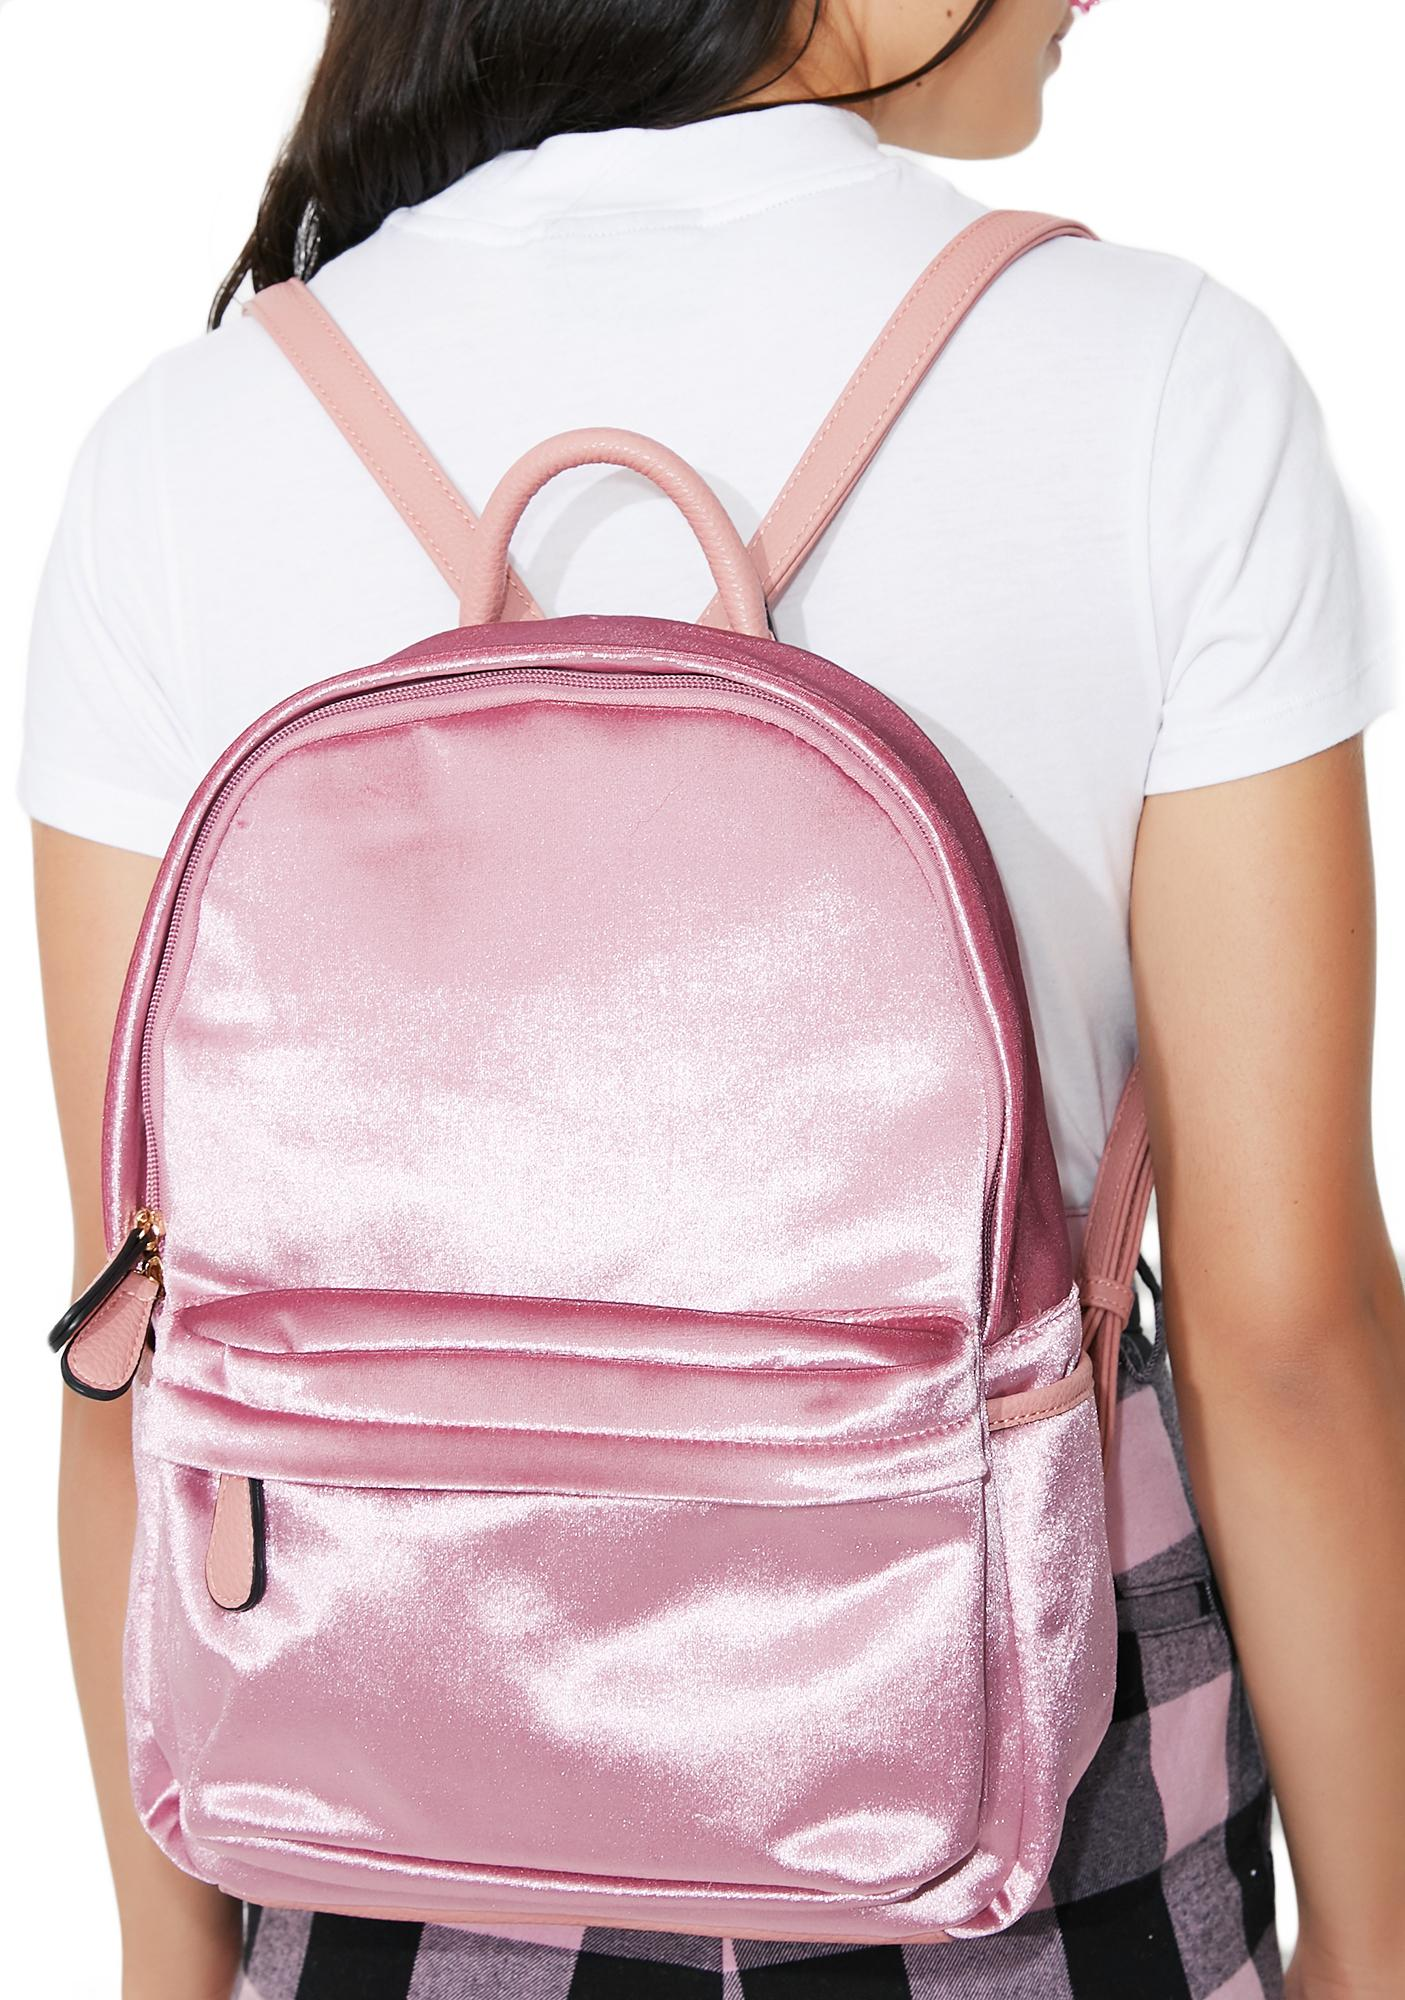 Smooth Move Velvet Backpack